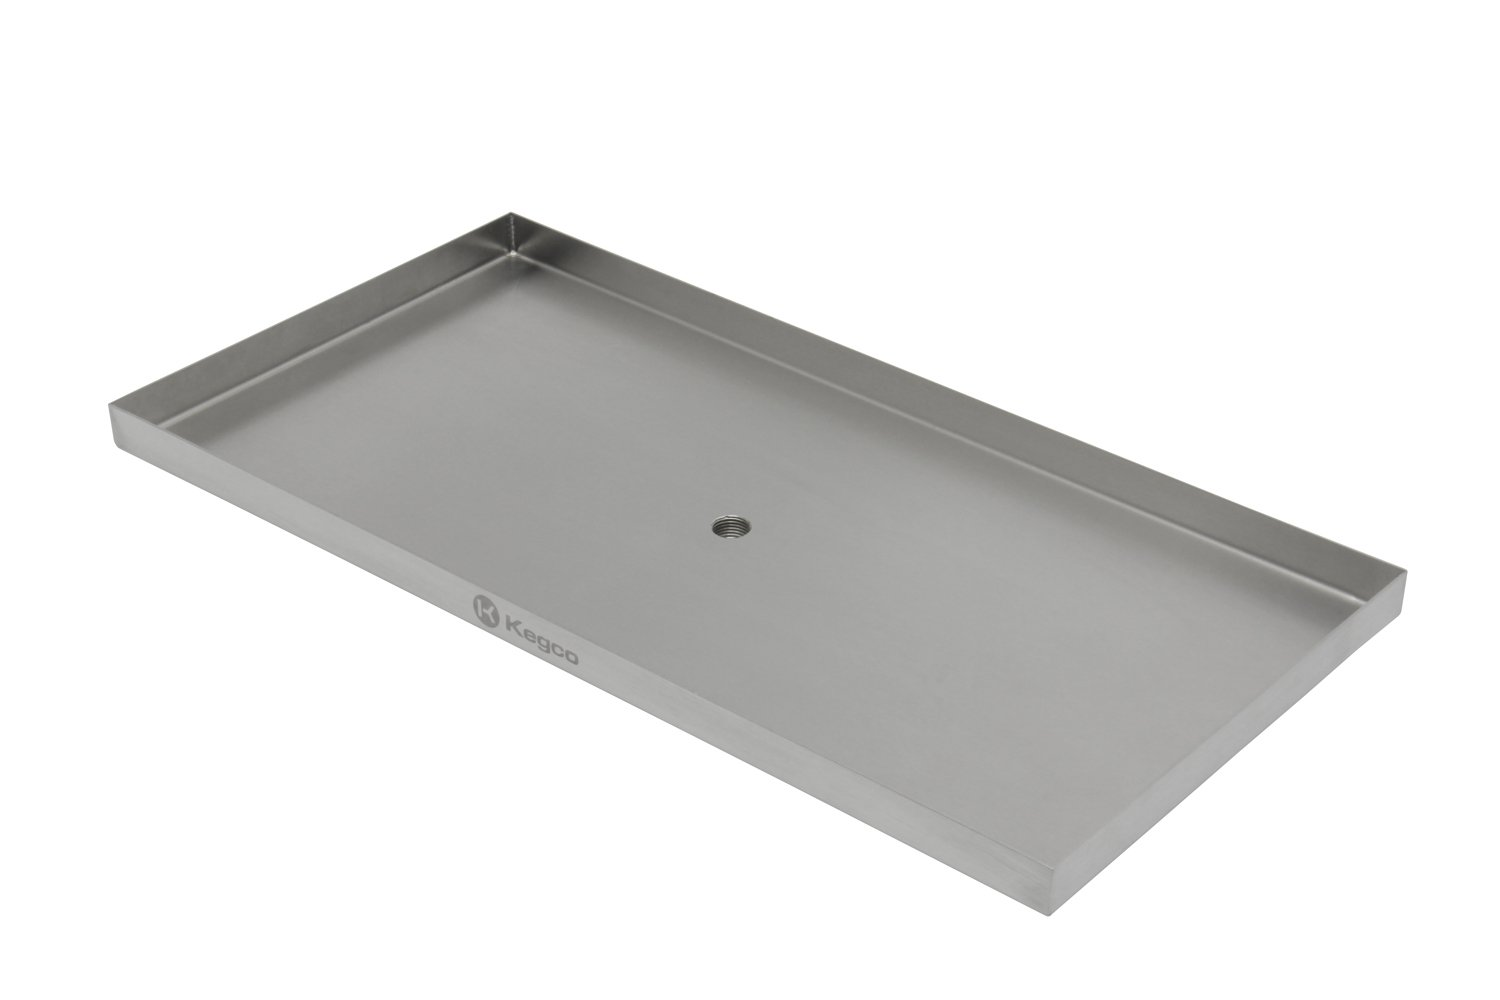 Kegco SESM-189D 18'' x 9'' Surface Mount Drip Tray with Drain by Kegco (Image #3)